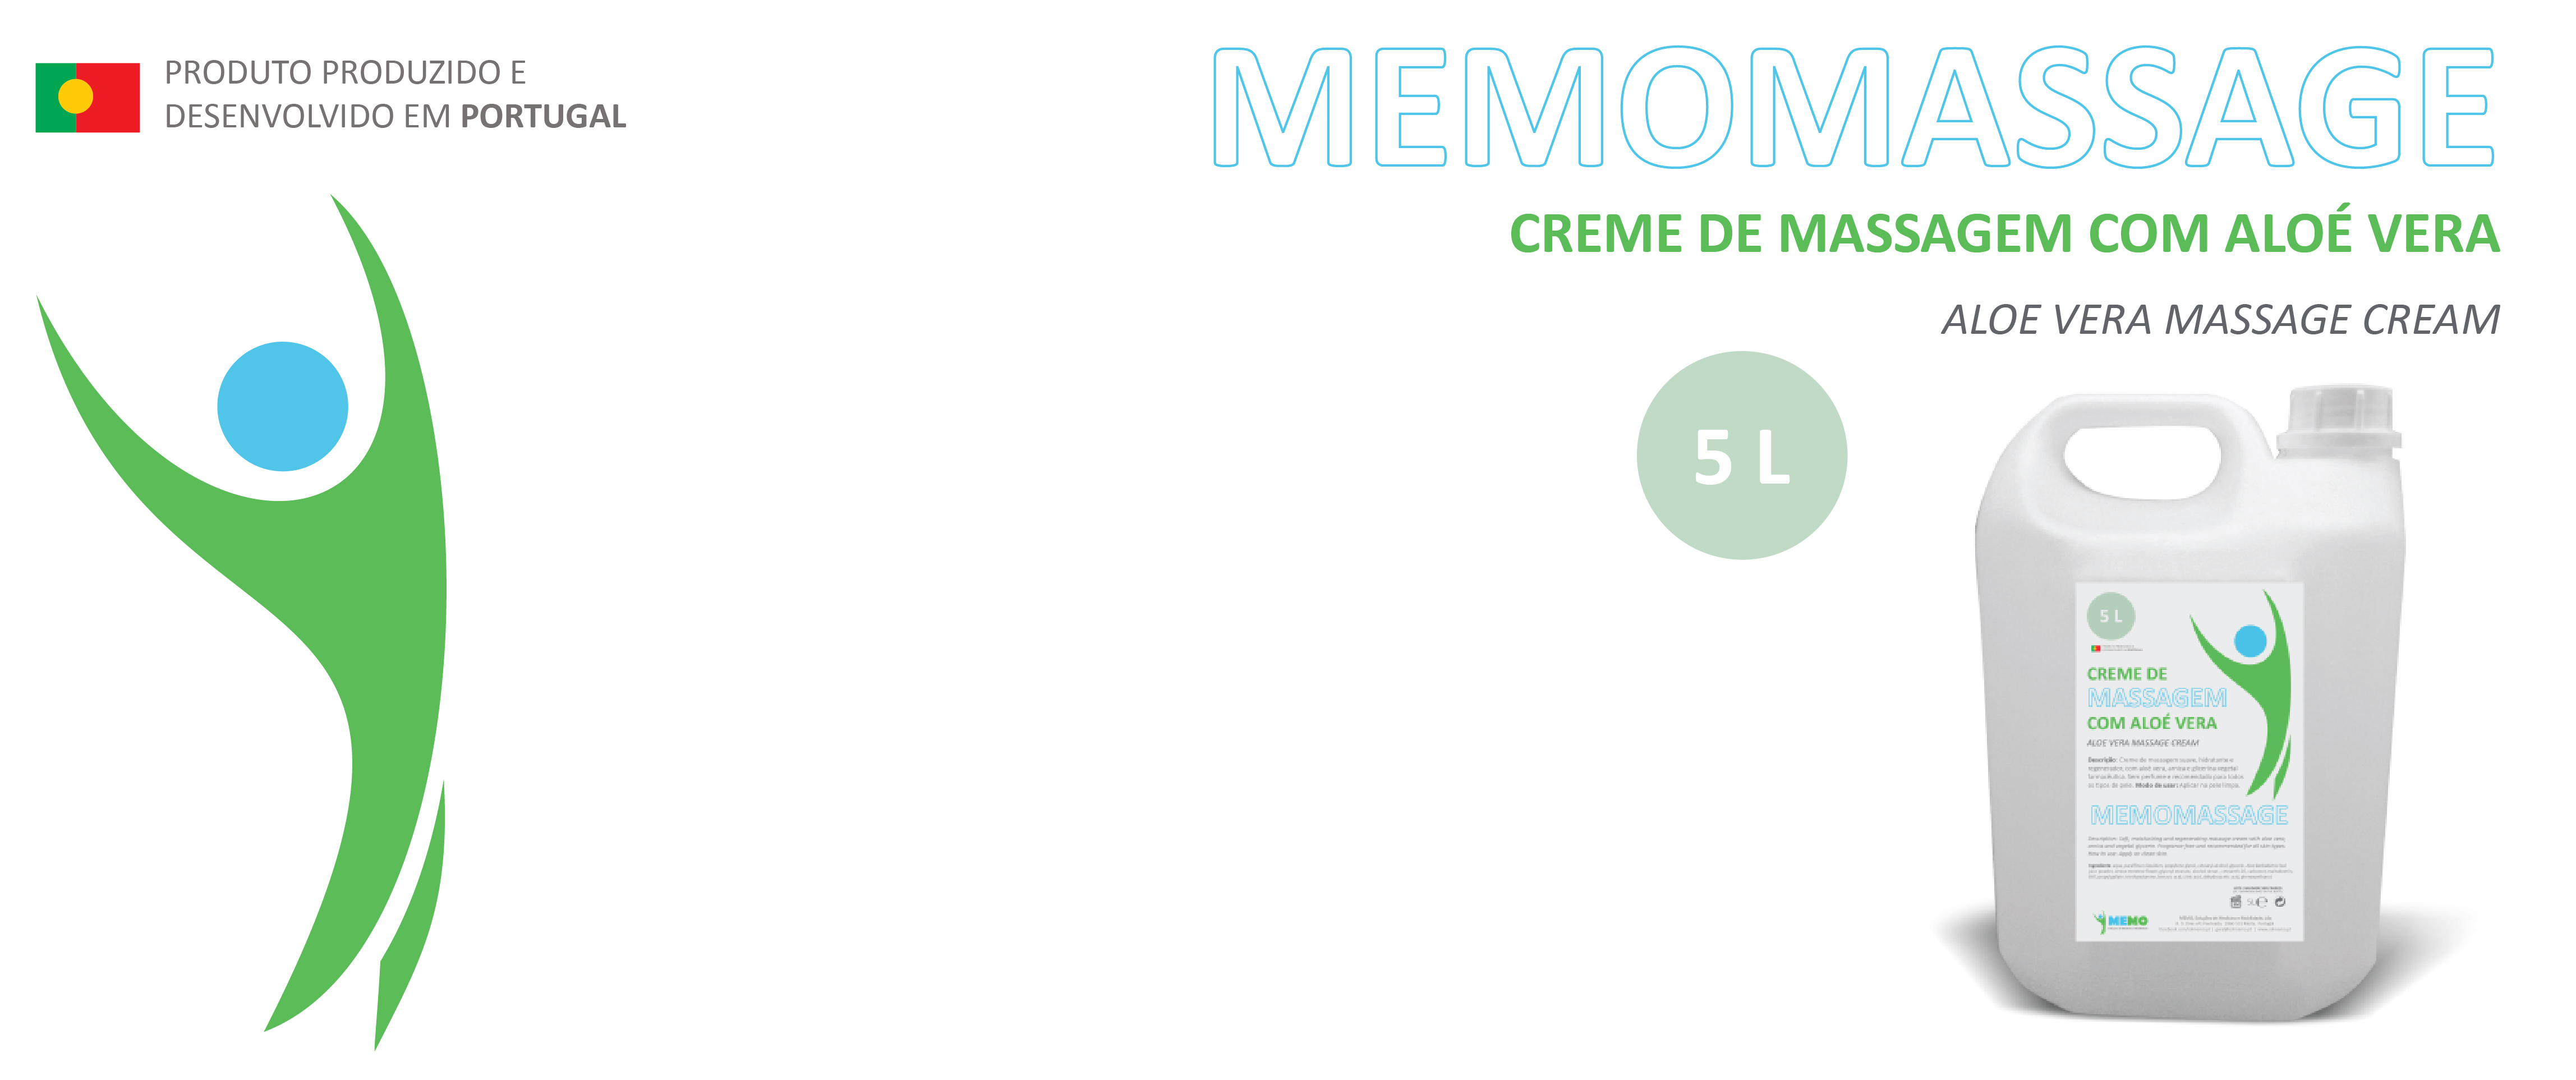 Creme de Massagem - MEMOMASSAGE